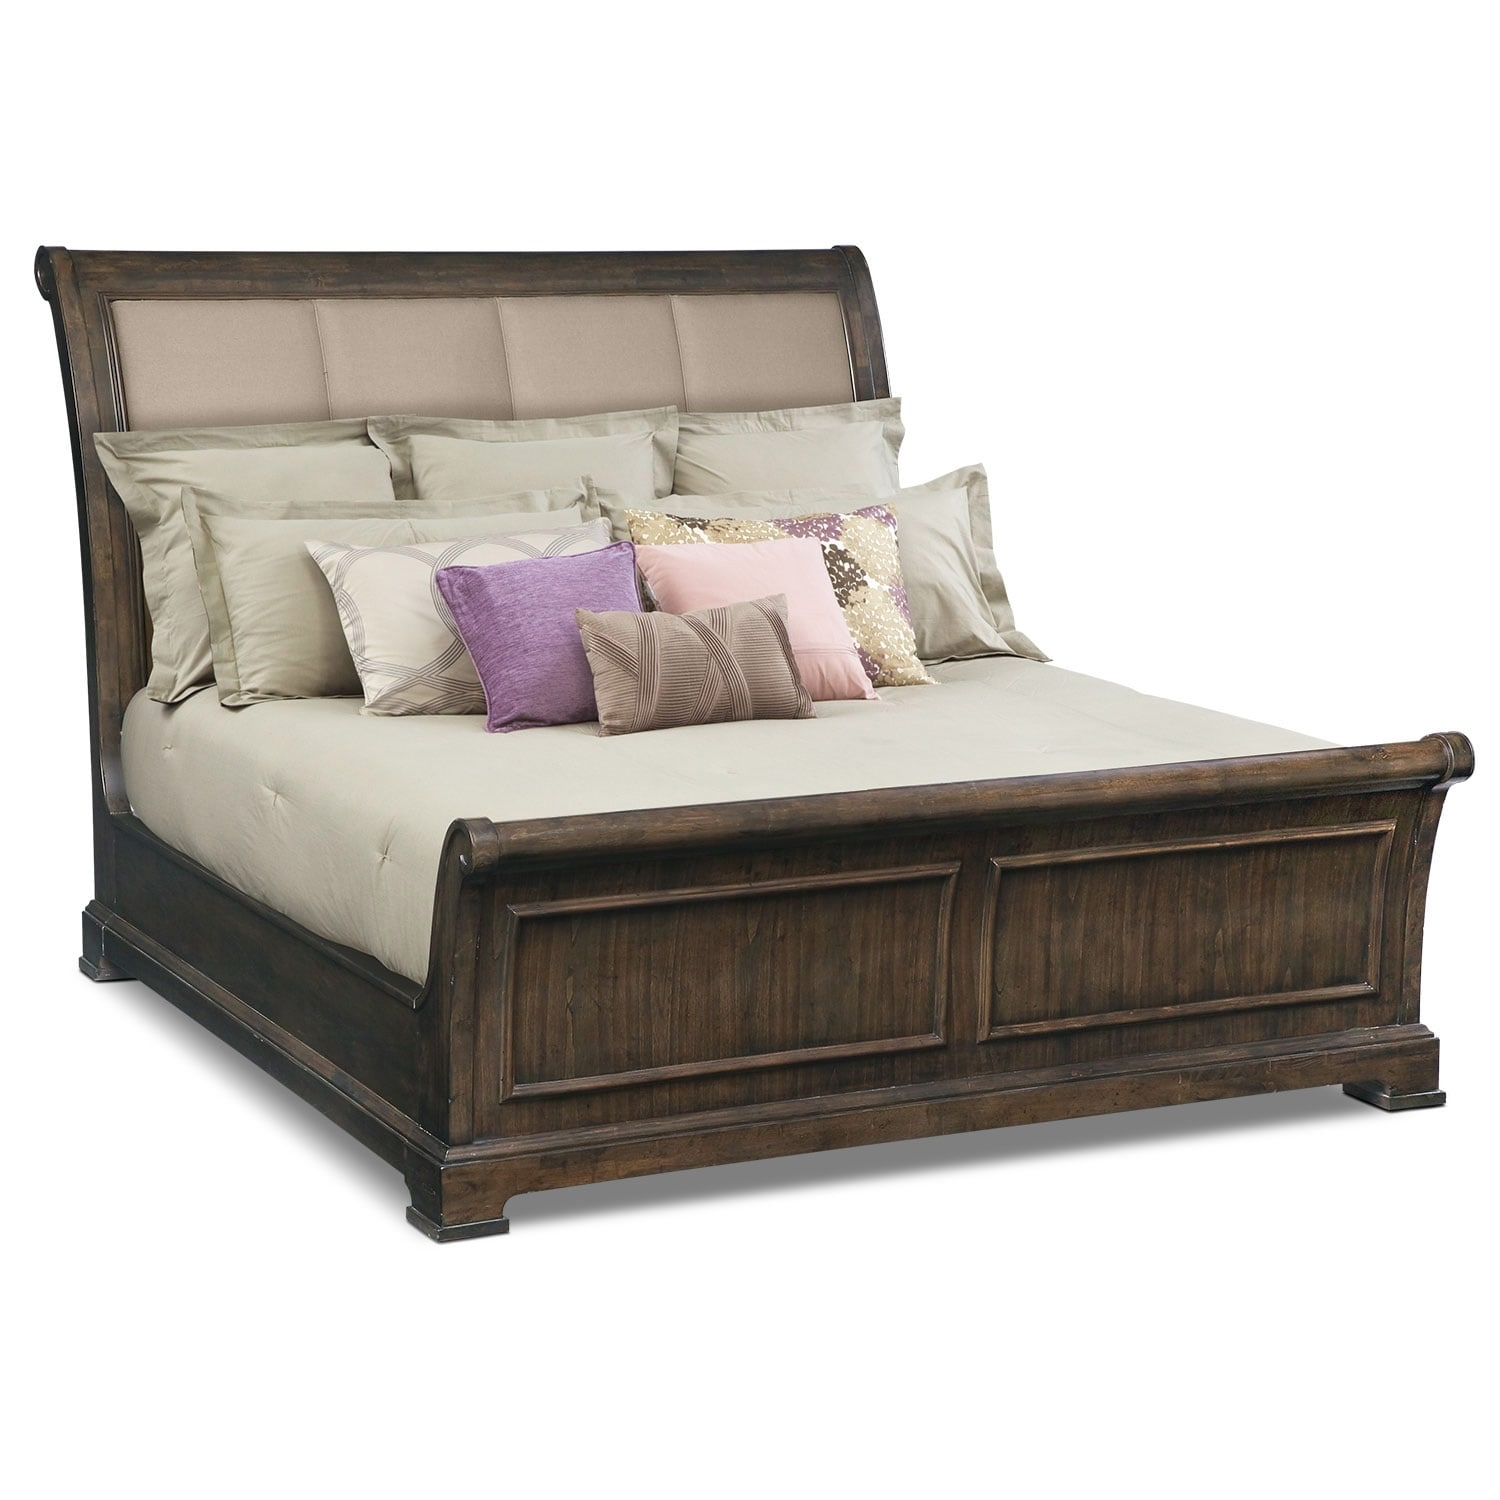 Bedroom Furniture - Collinwood King Bed - Brown